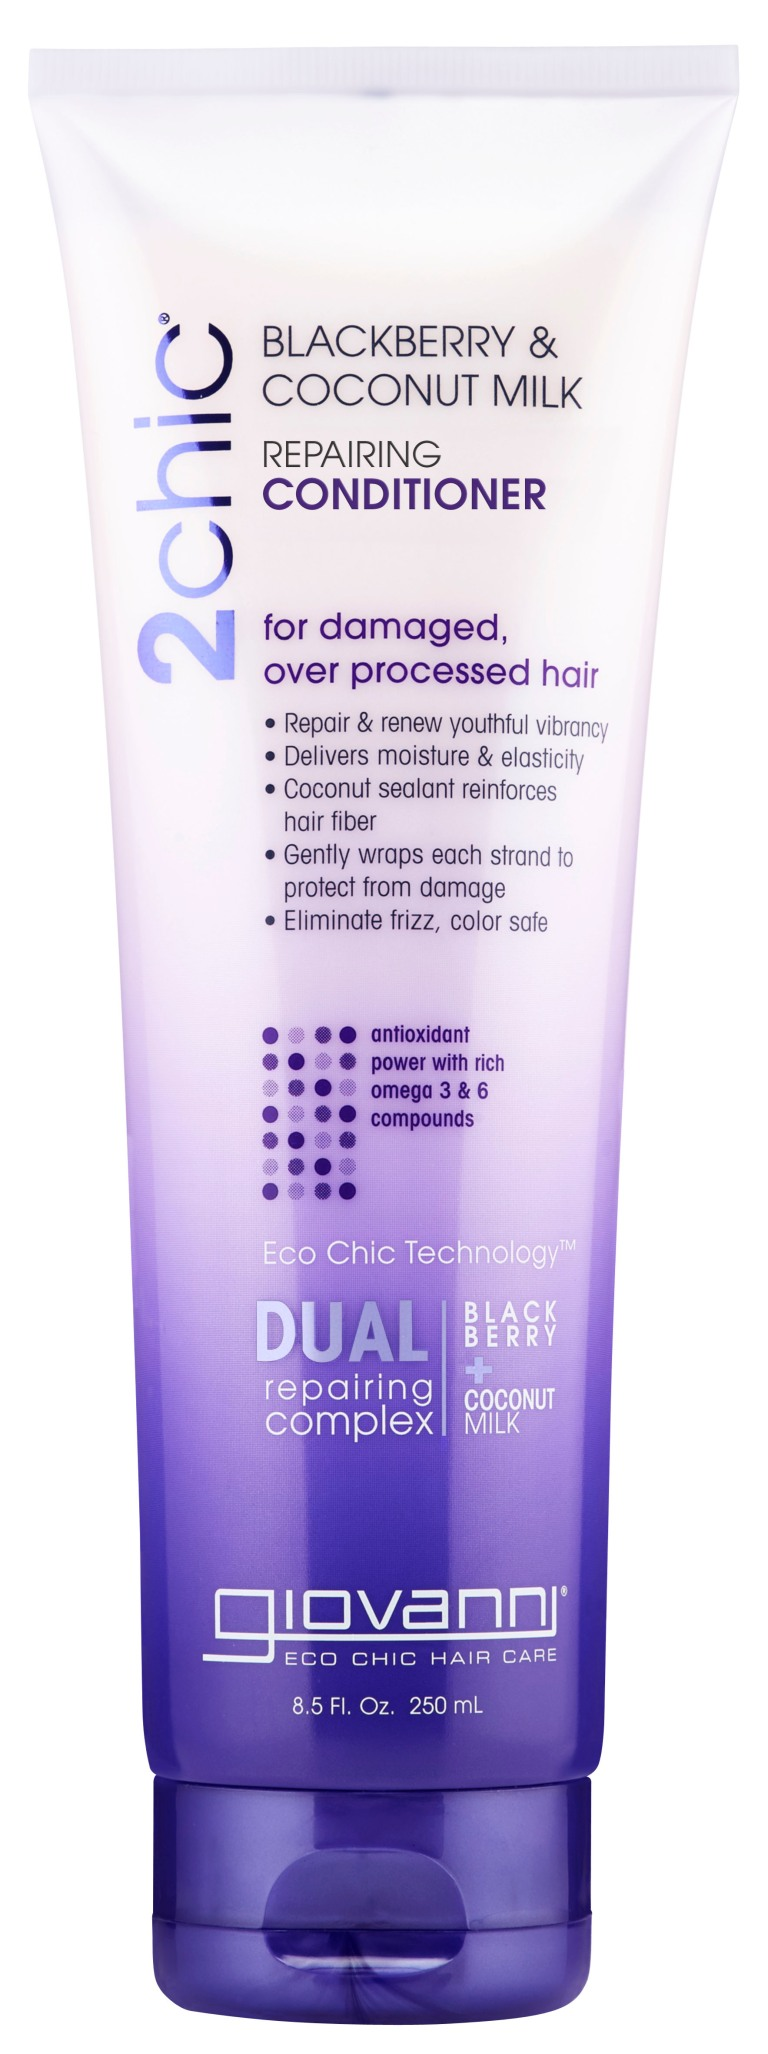 2chic Repairing Conditioner 8.5oz